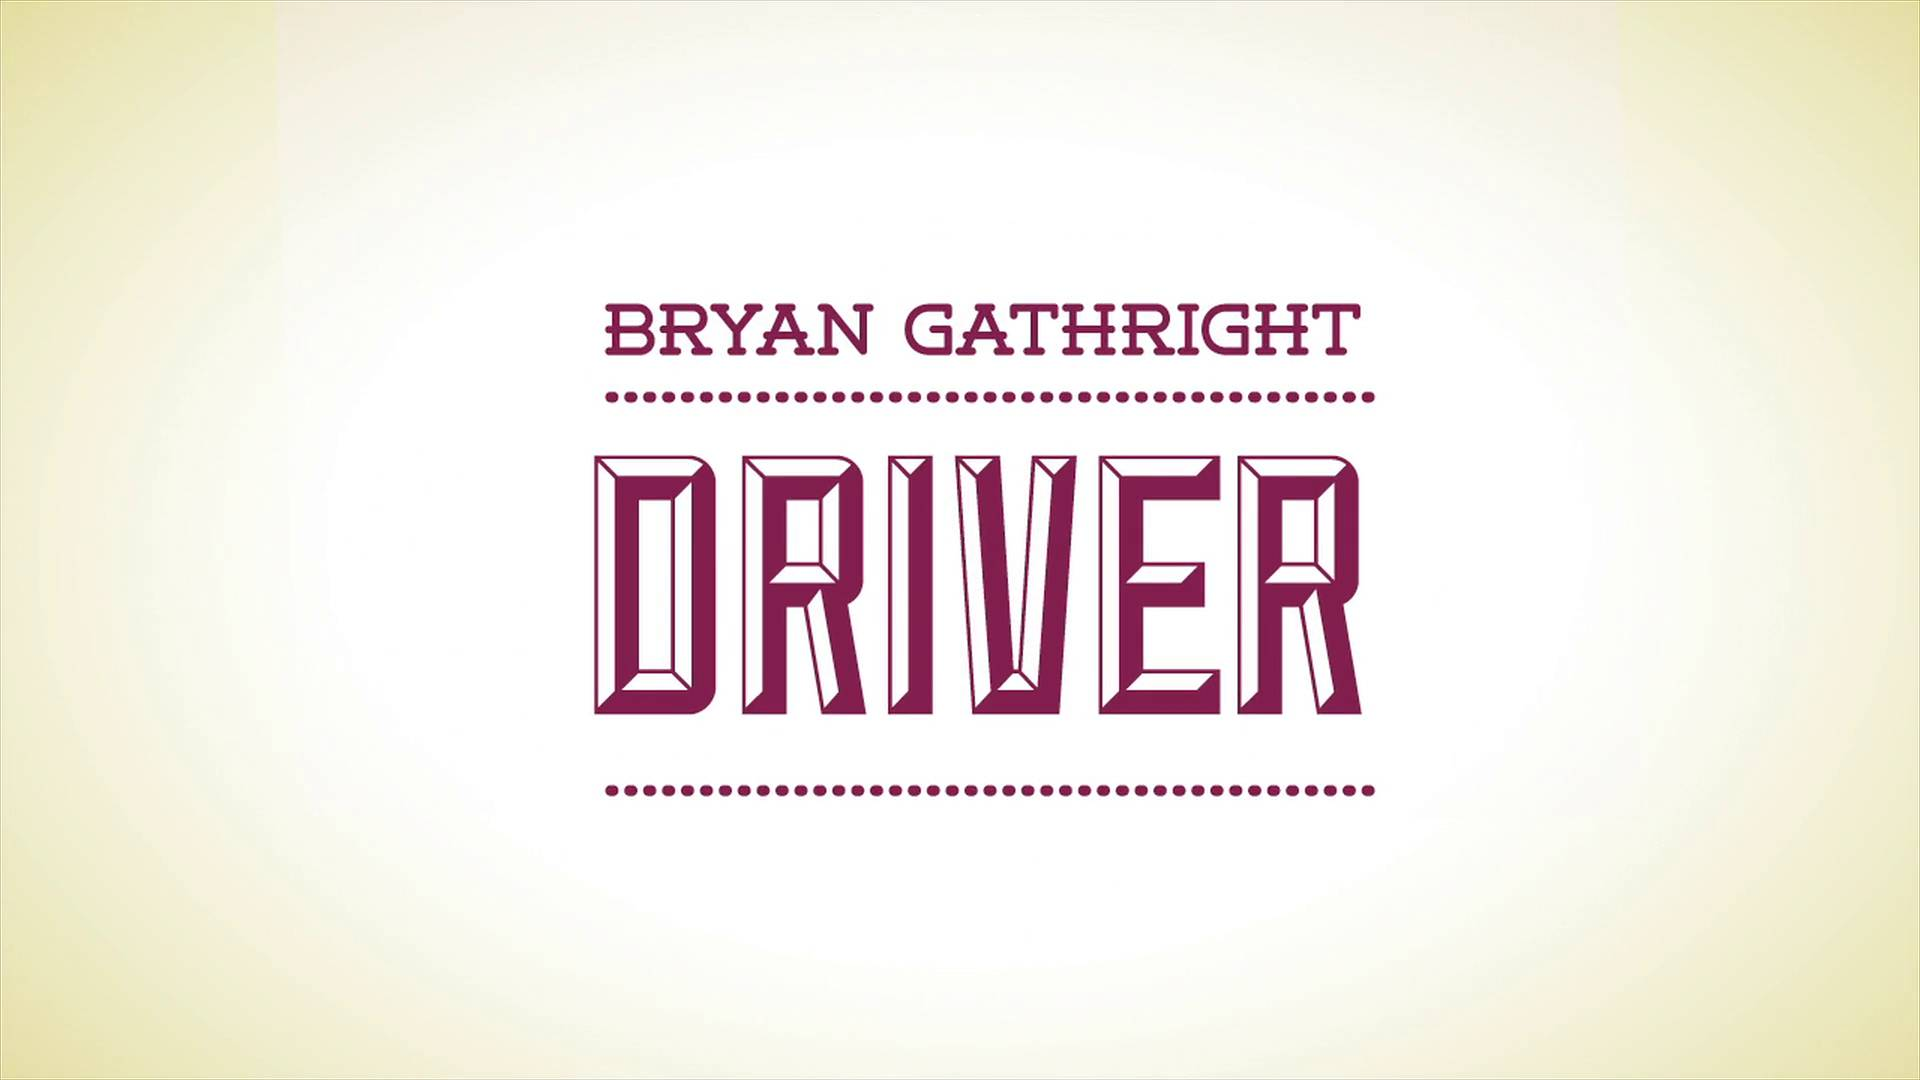 The Ultimate Driver Series by Bryan Gaithright